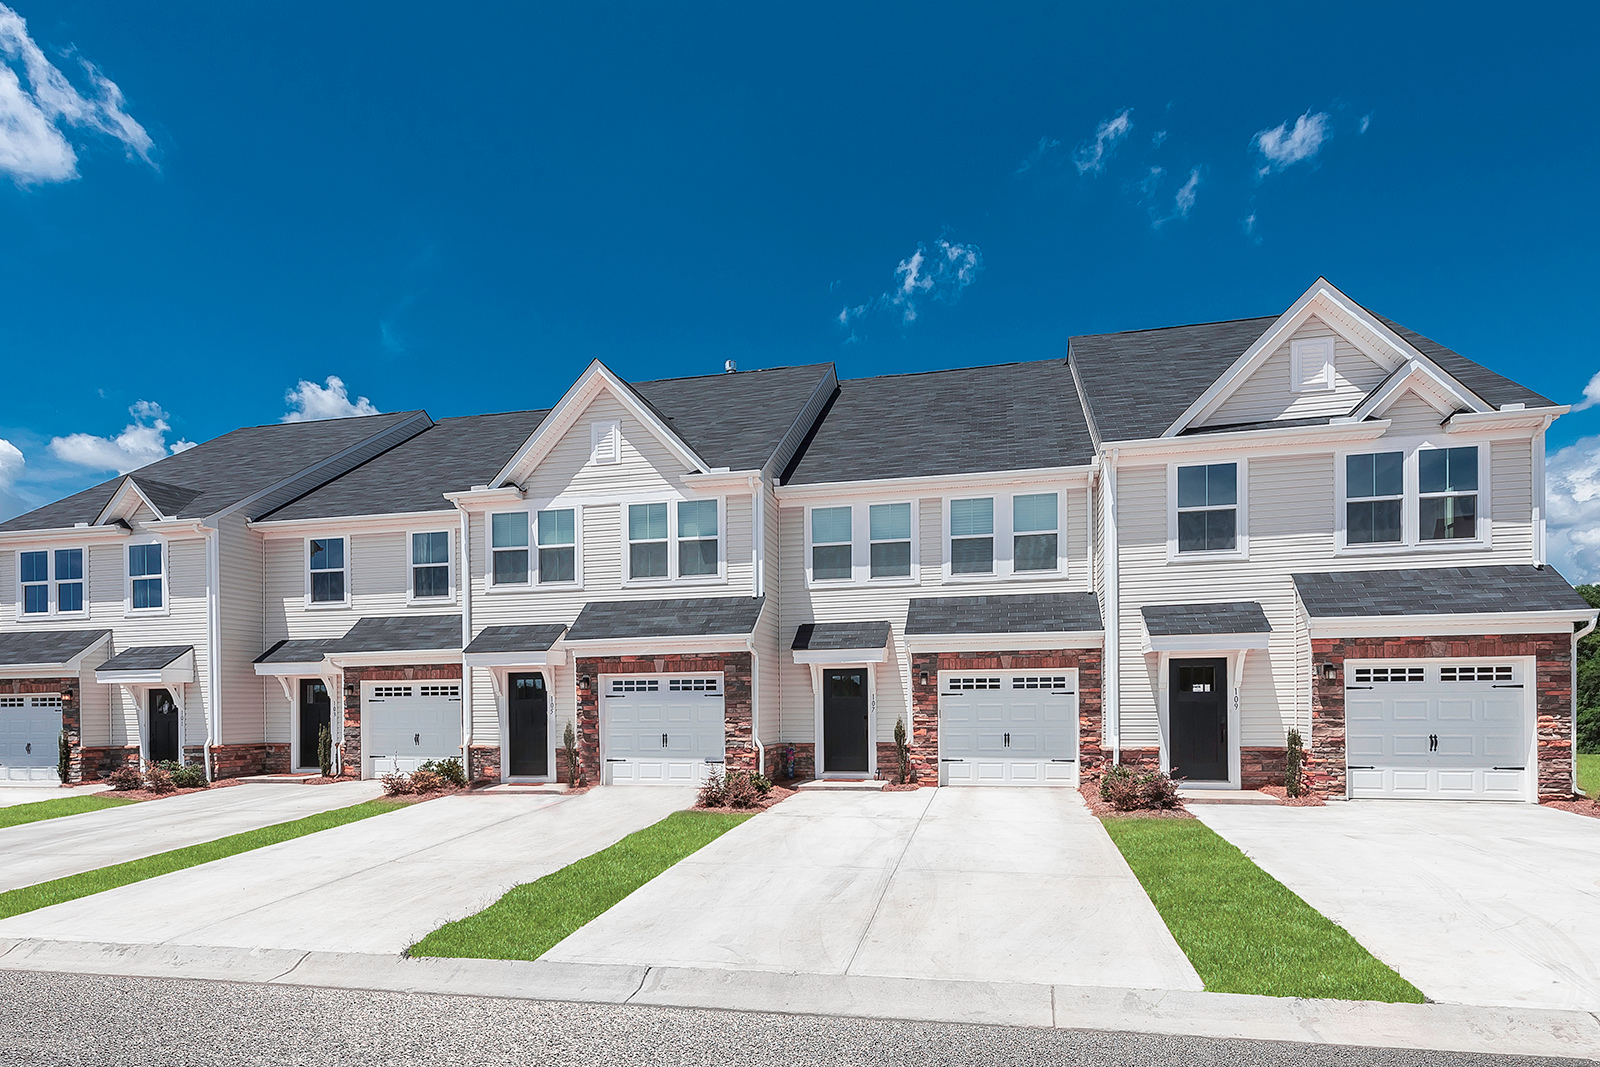 New Homes For Sale At Weststone In Spartanburg Sc Within The